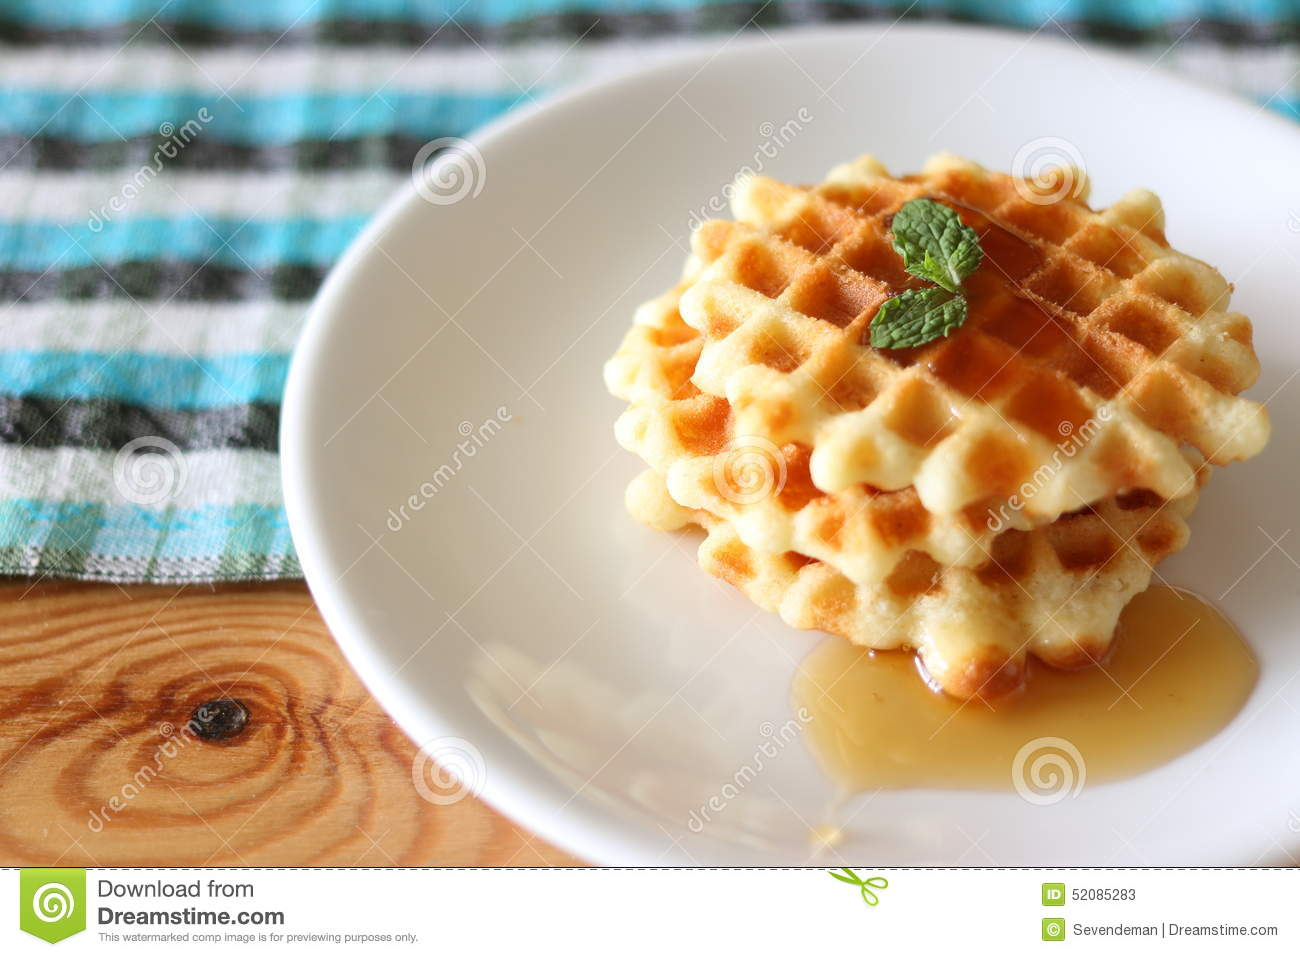 Waffles and a cup of coffee.